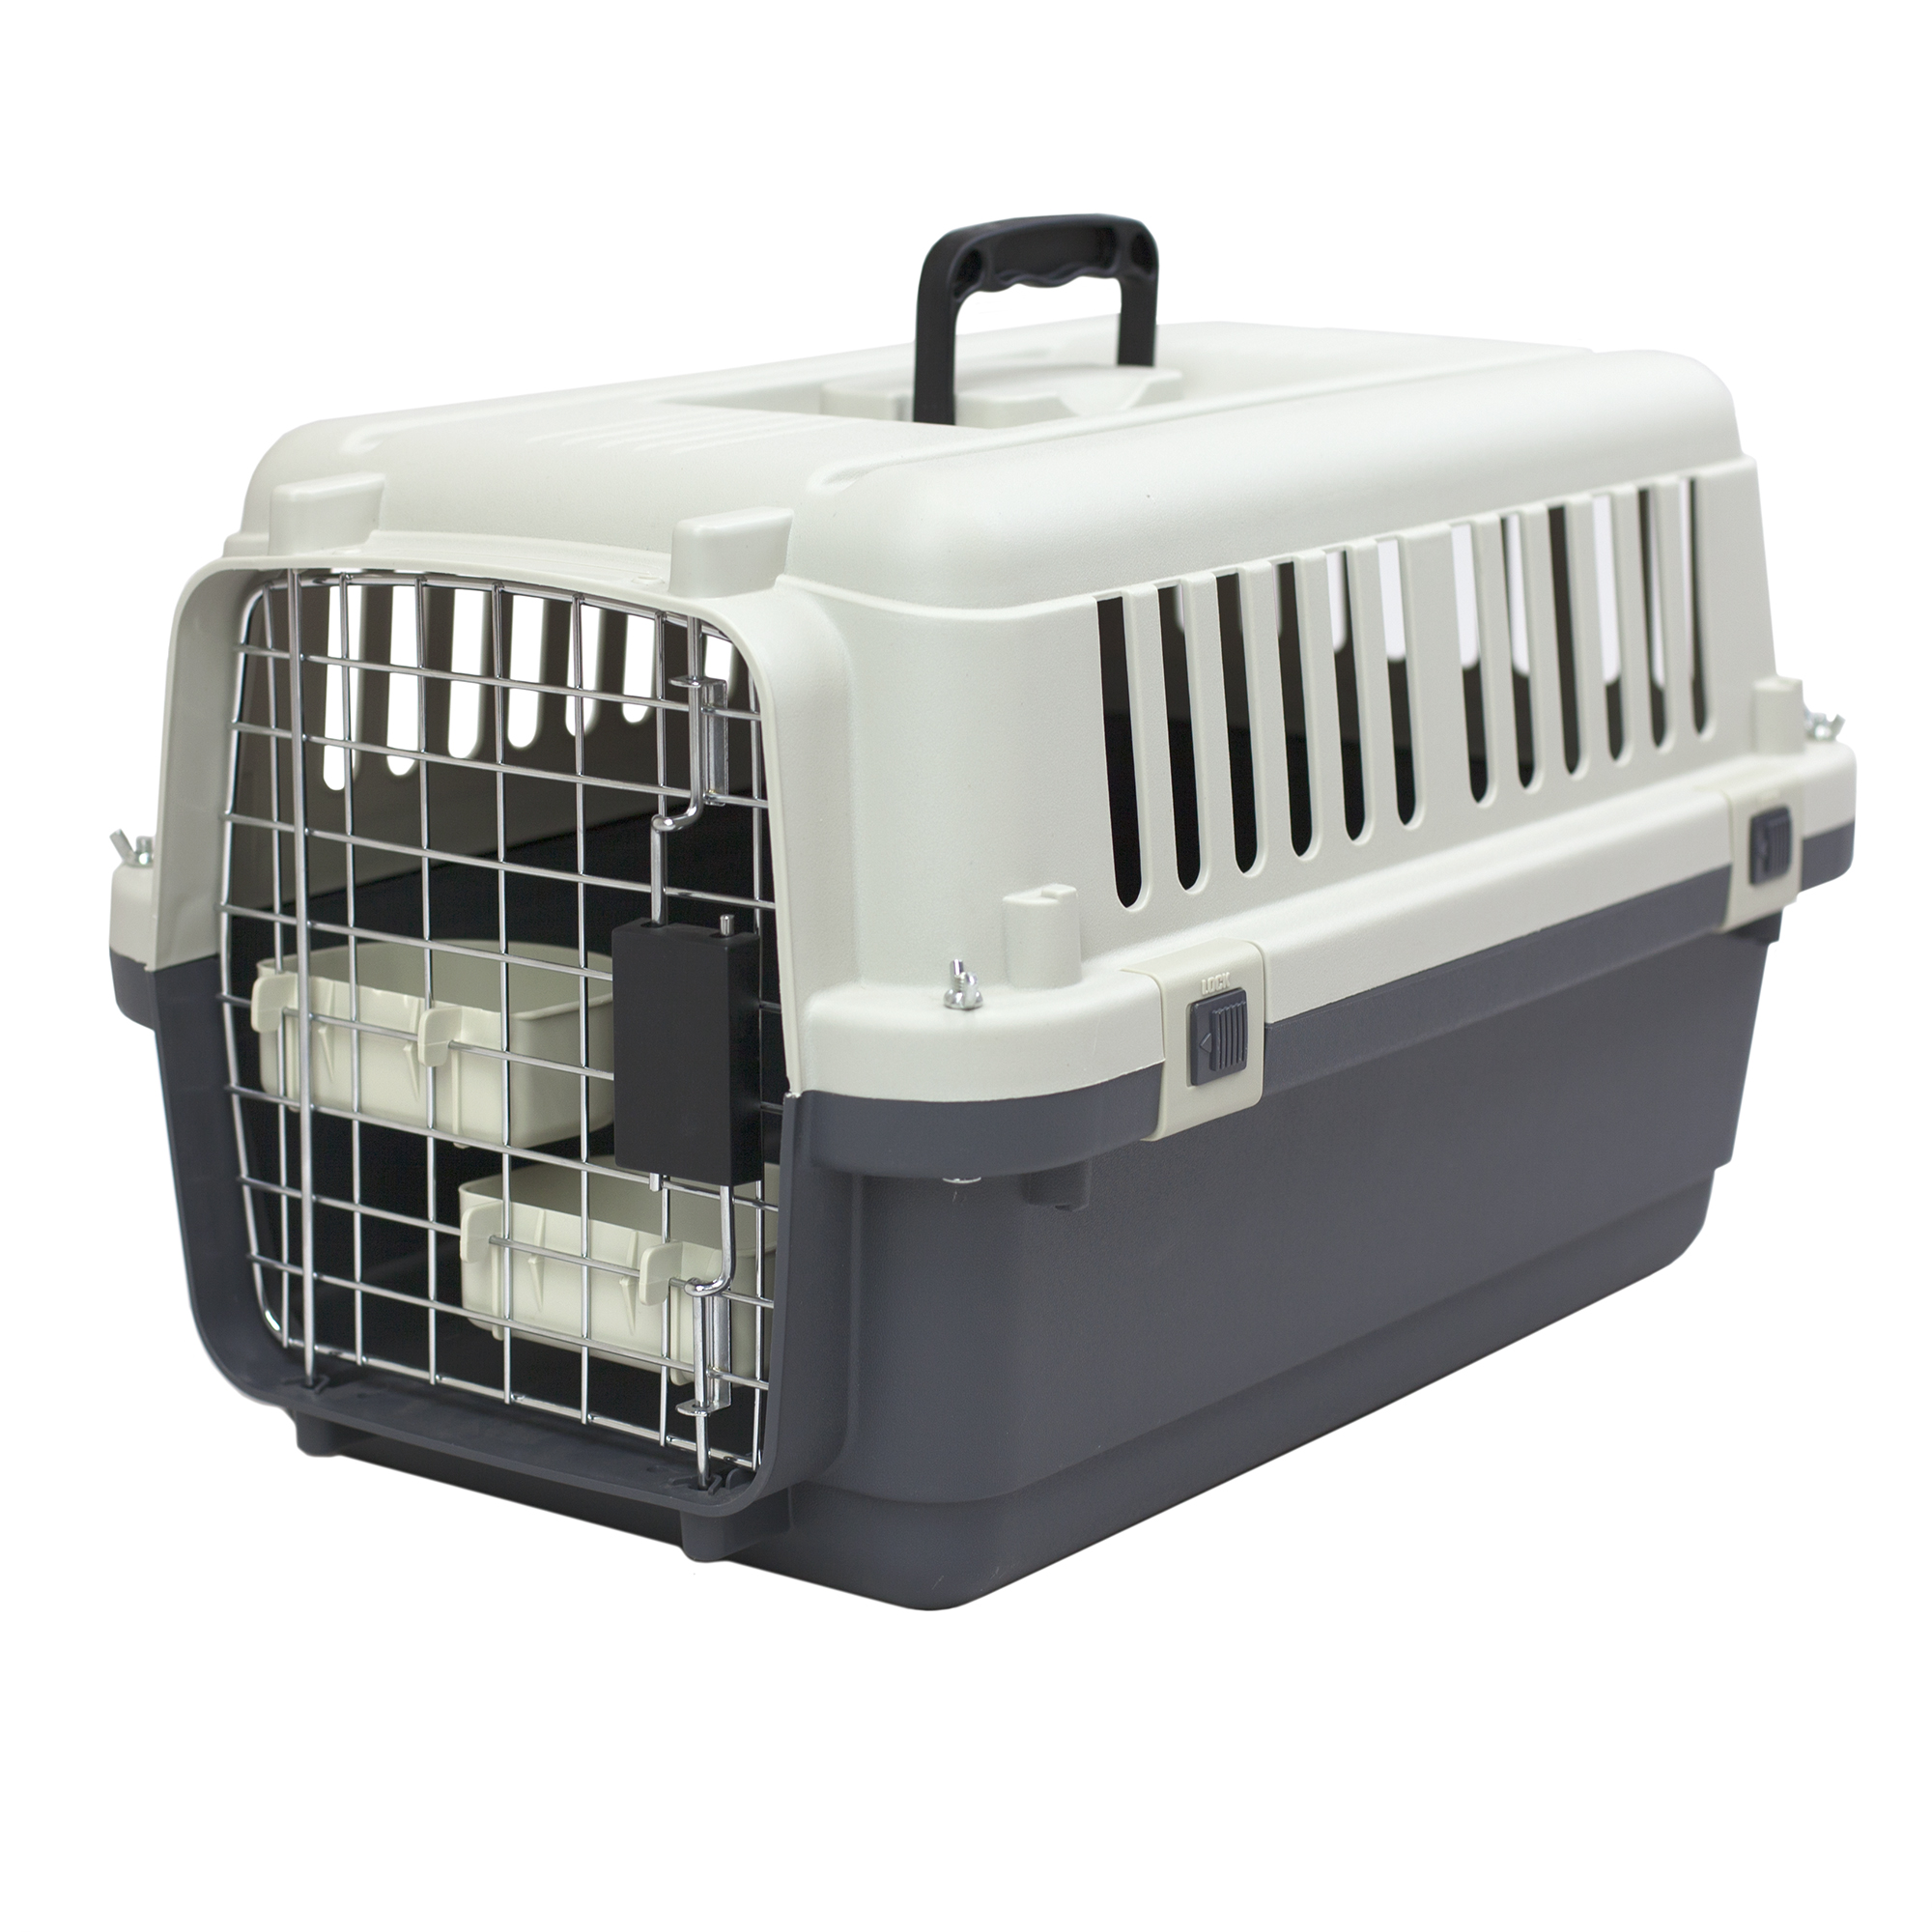 Kennels Direct Premium Plastic Dog Kennel and Travel Crate , Small